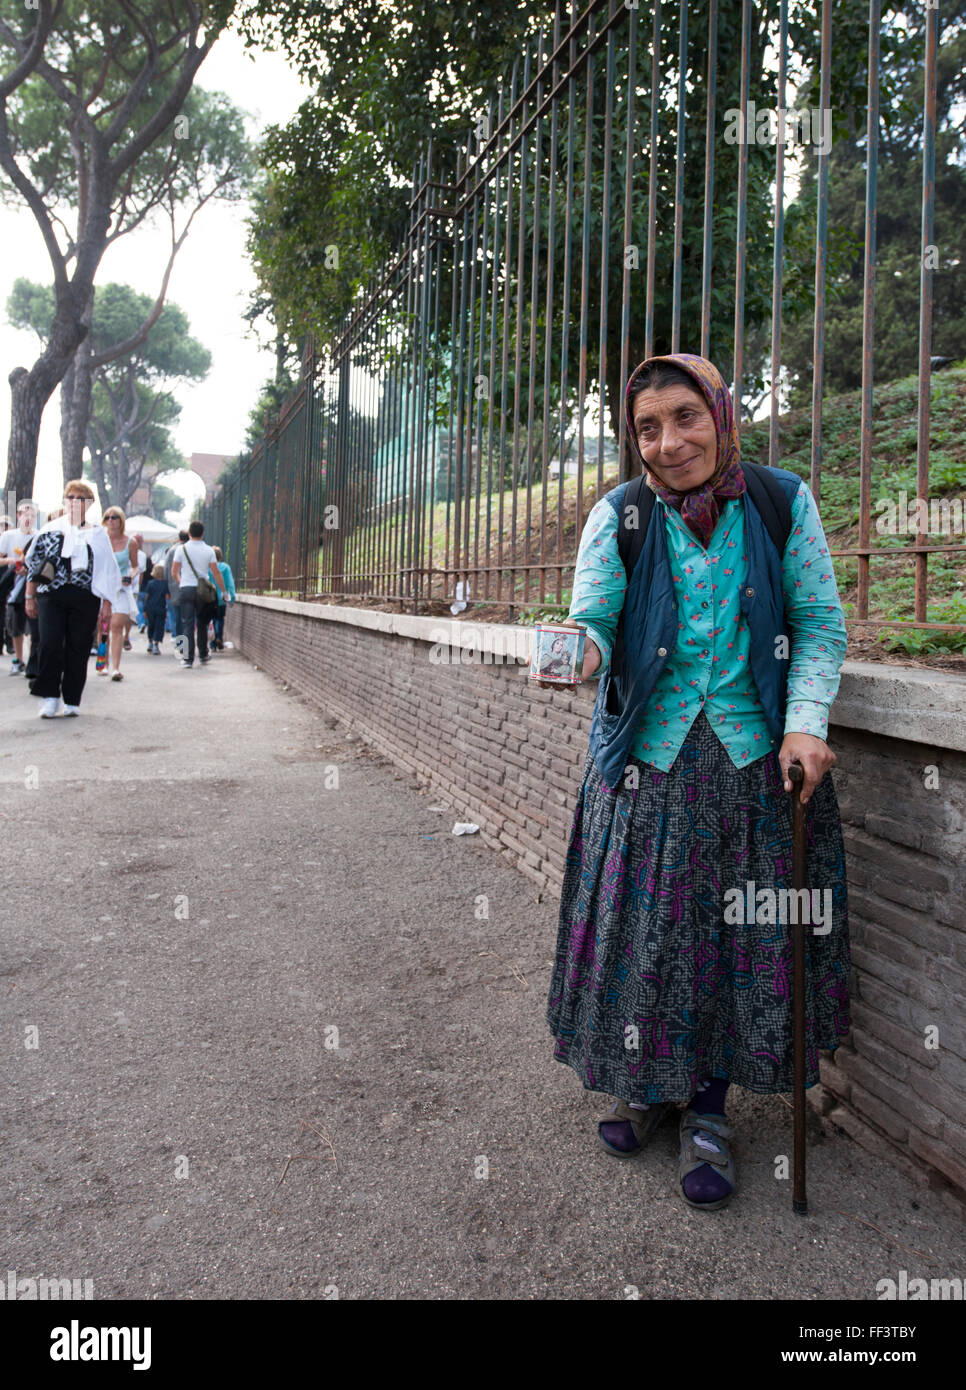 An elderly lady begging on public street in central Rome, Italy, Europe. - Stock Image